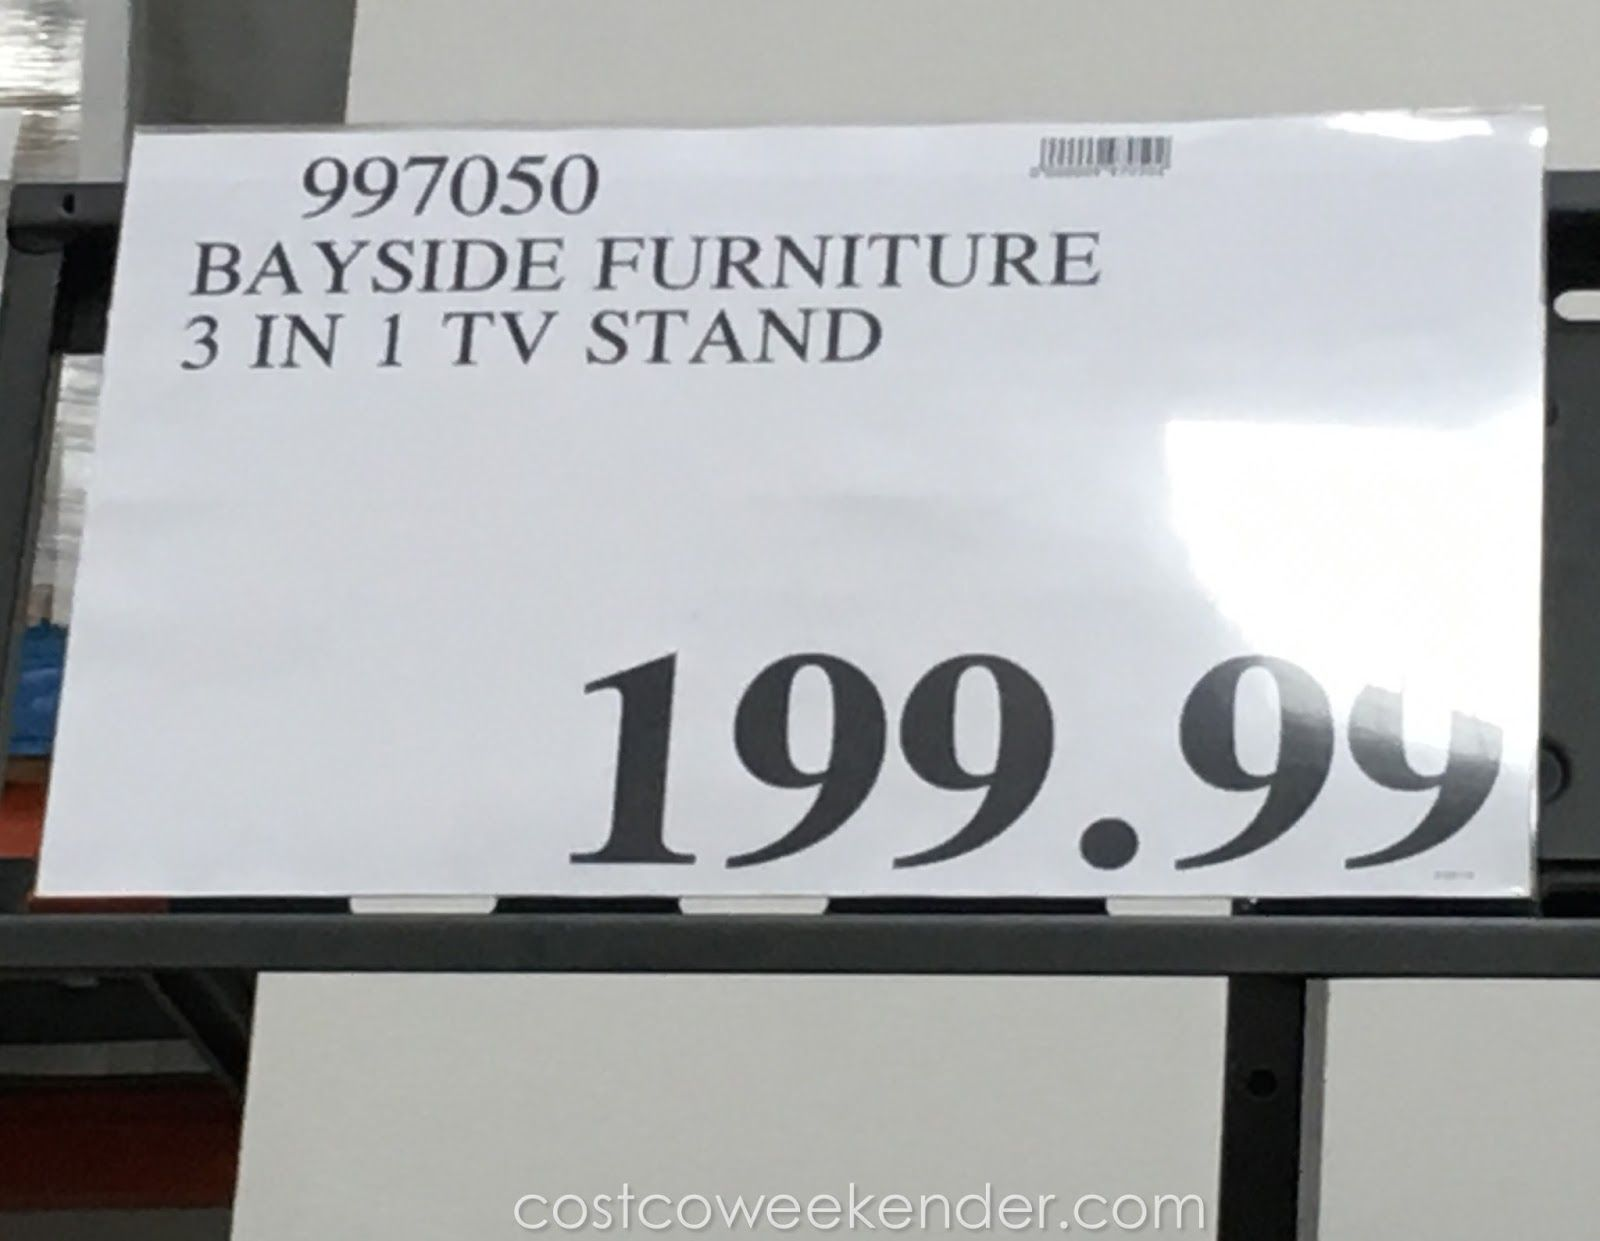 Costco 997050 Bayside Furnishings 3 In 1 Tv Stand For The Home